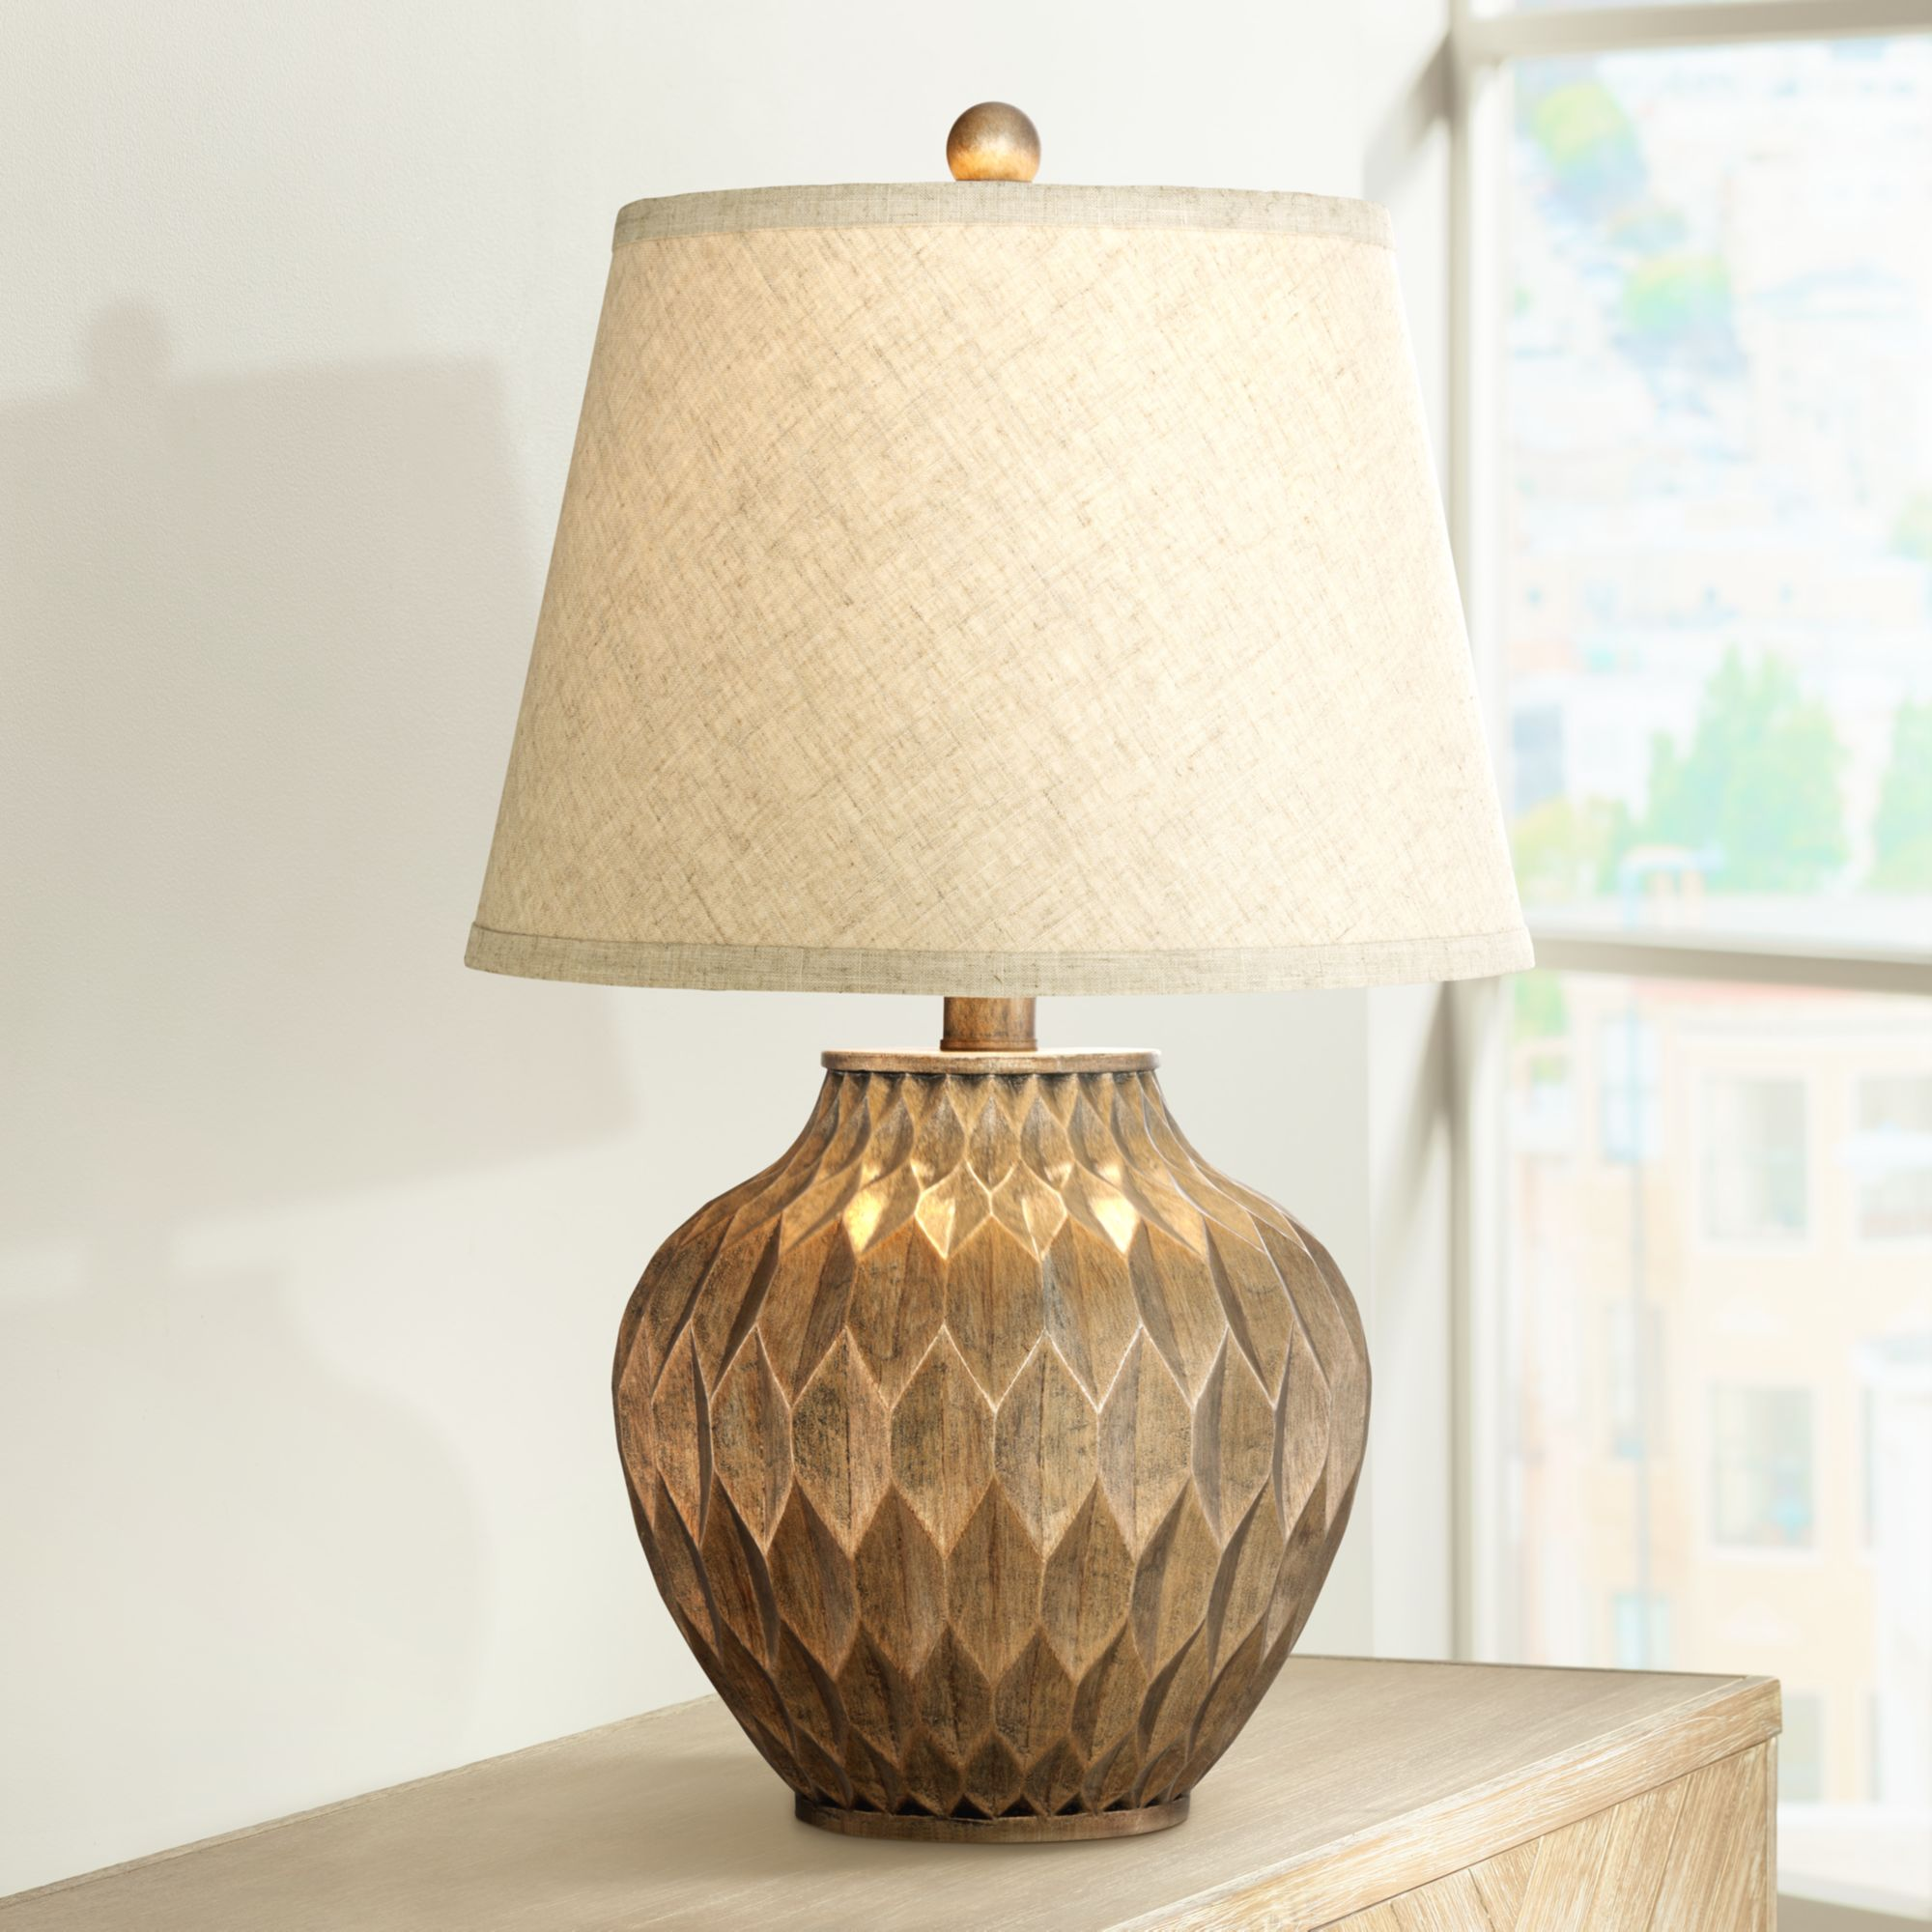 lighting modern accent table lamp warm bronze geometric urn tapered drum shade for living room family bedroom bedside office dining ornaments elm flooring pottery barn bench led